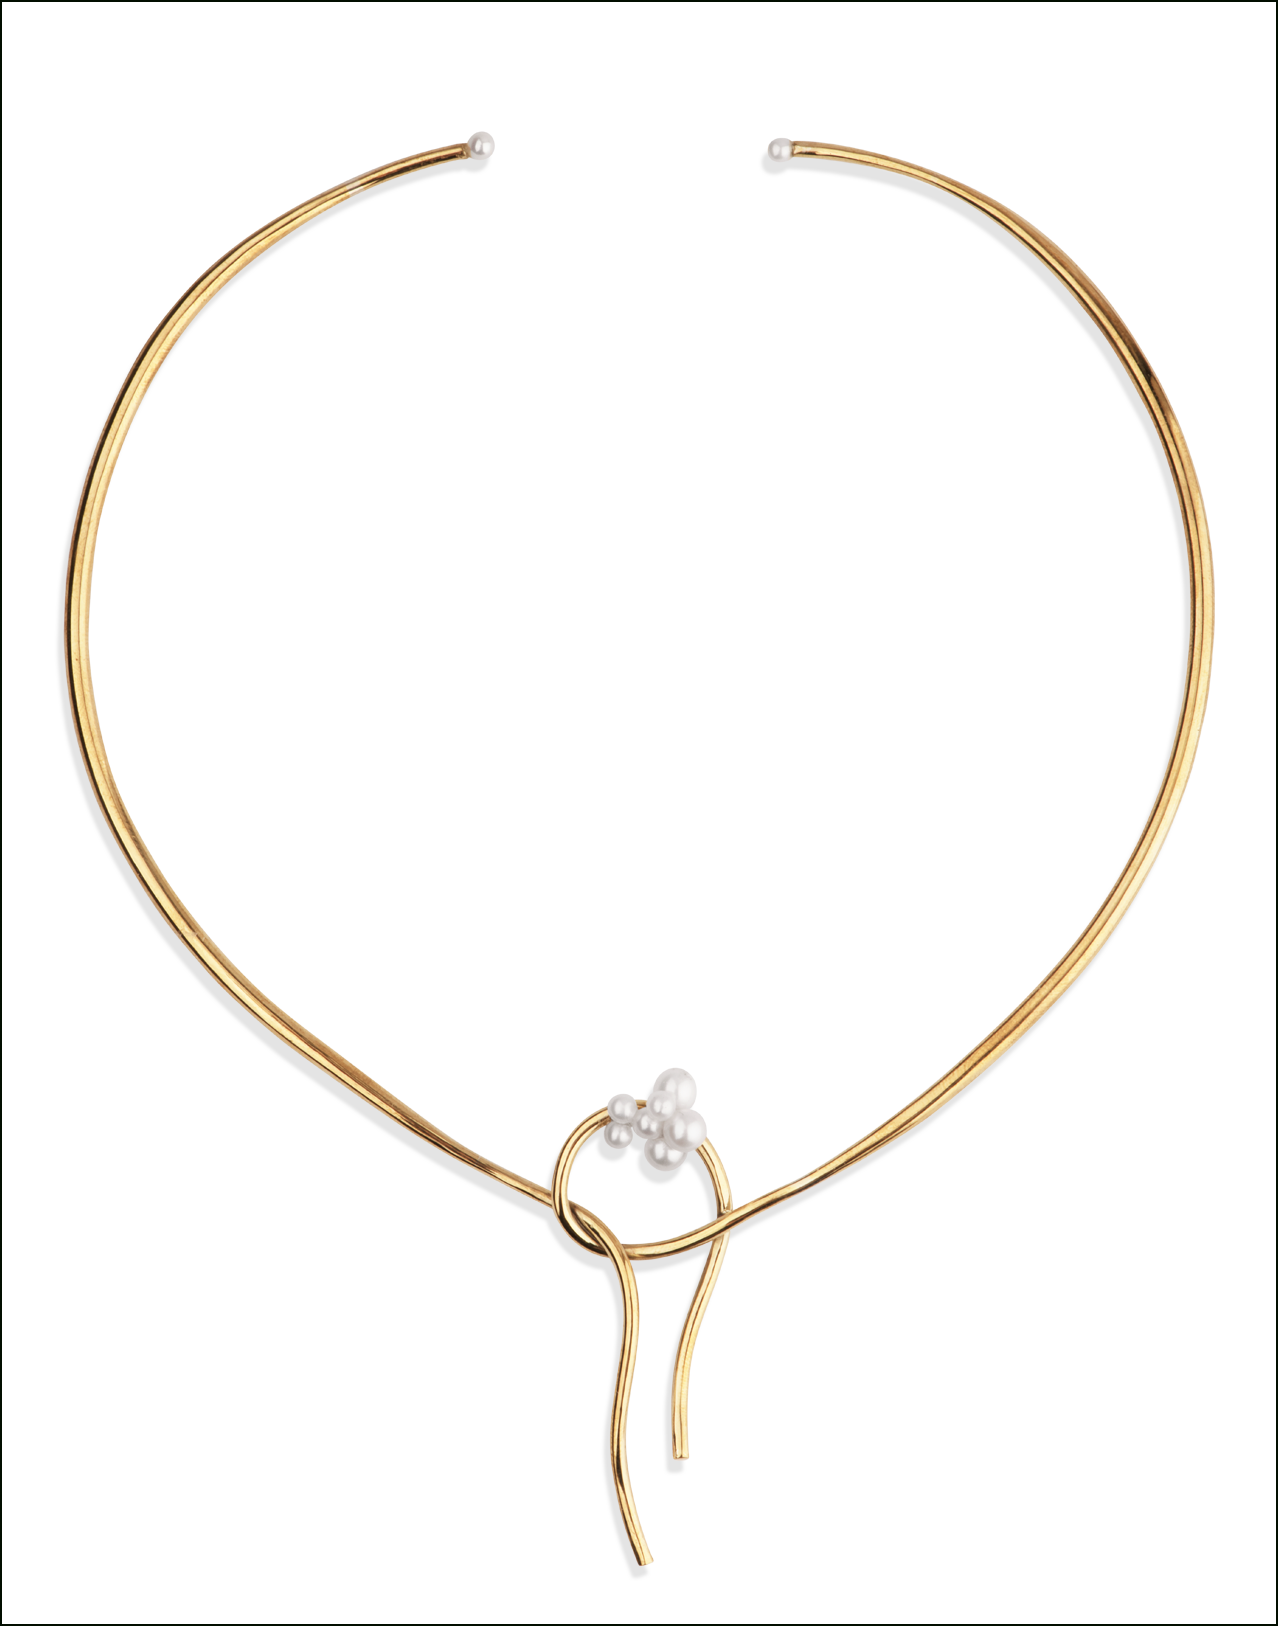 Completedworks-Necklace-Gold-Vermeil-Waiting-for-a-Miracle-1-1.png